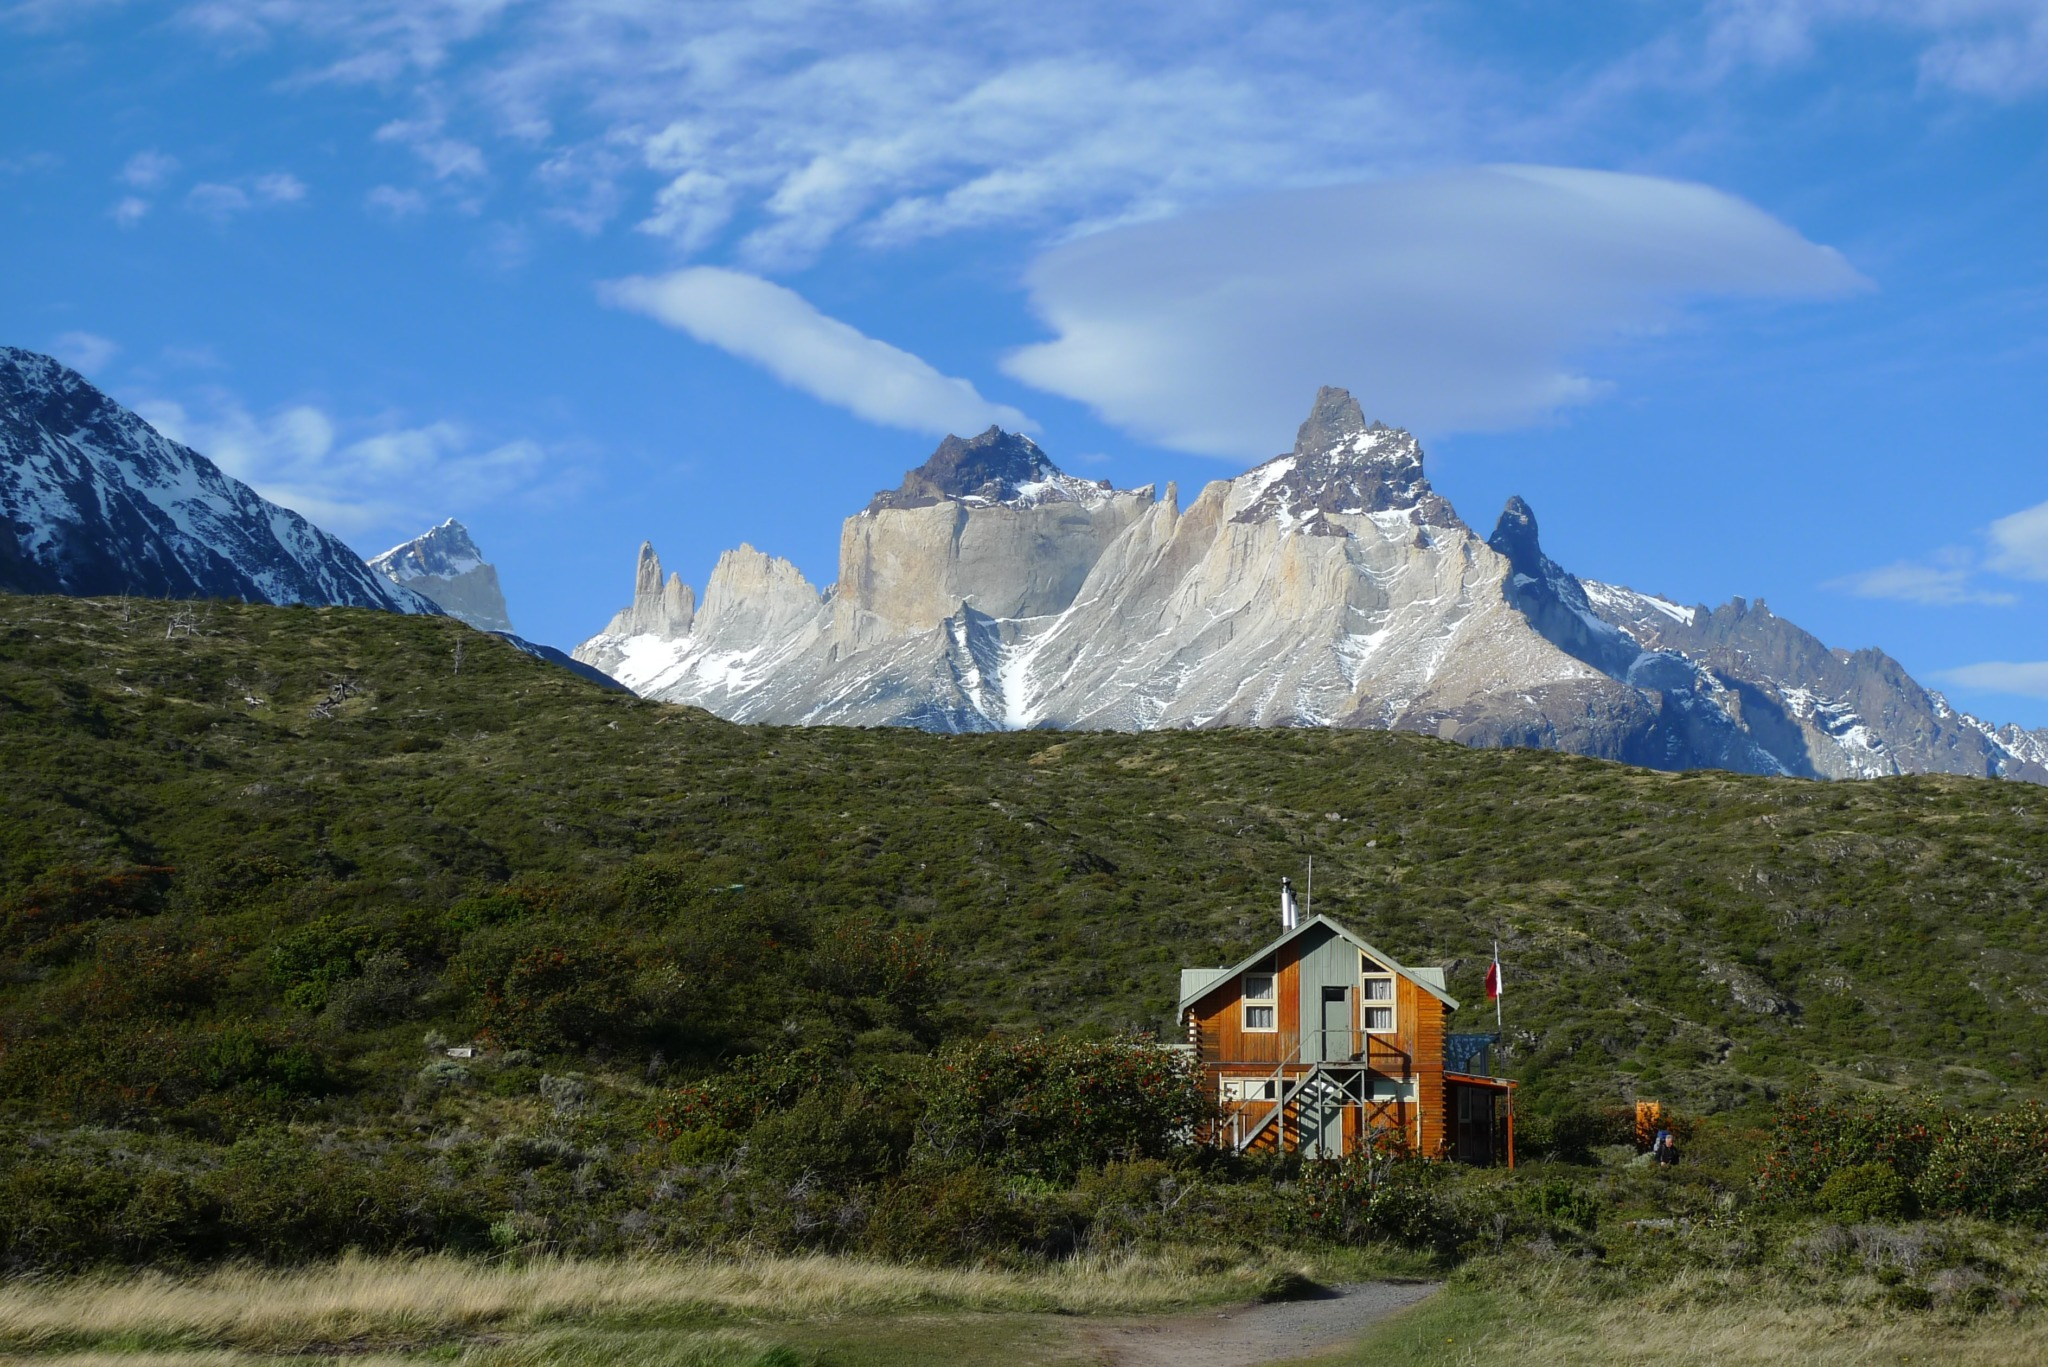 photo of Patagonia of a house in a green hillside standing before tall mountains